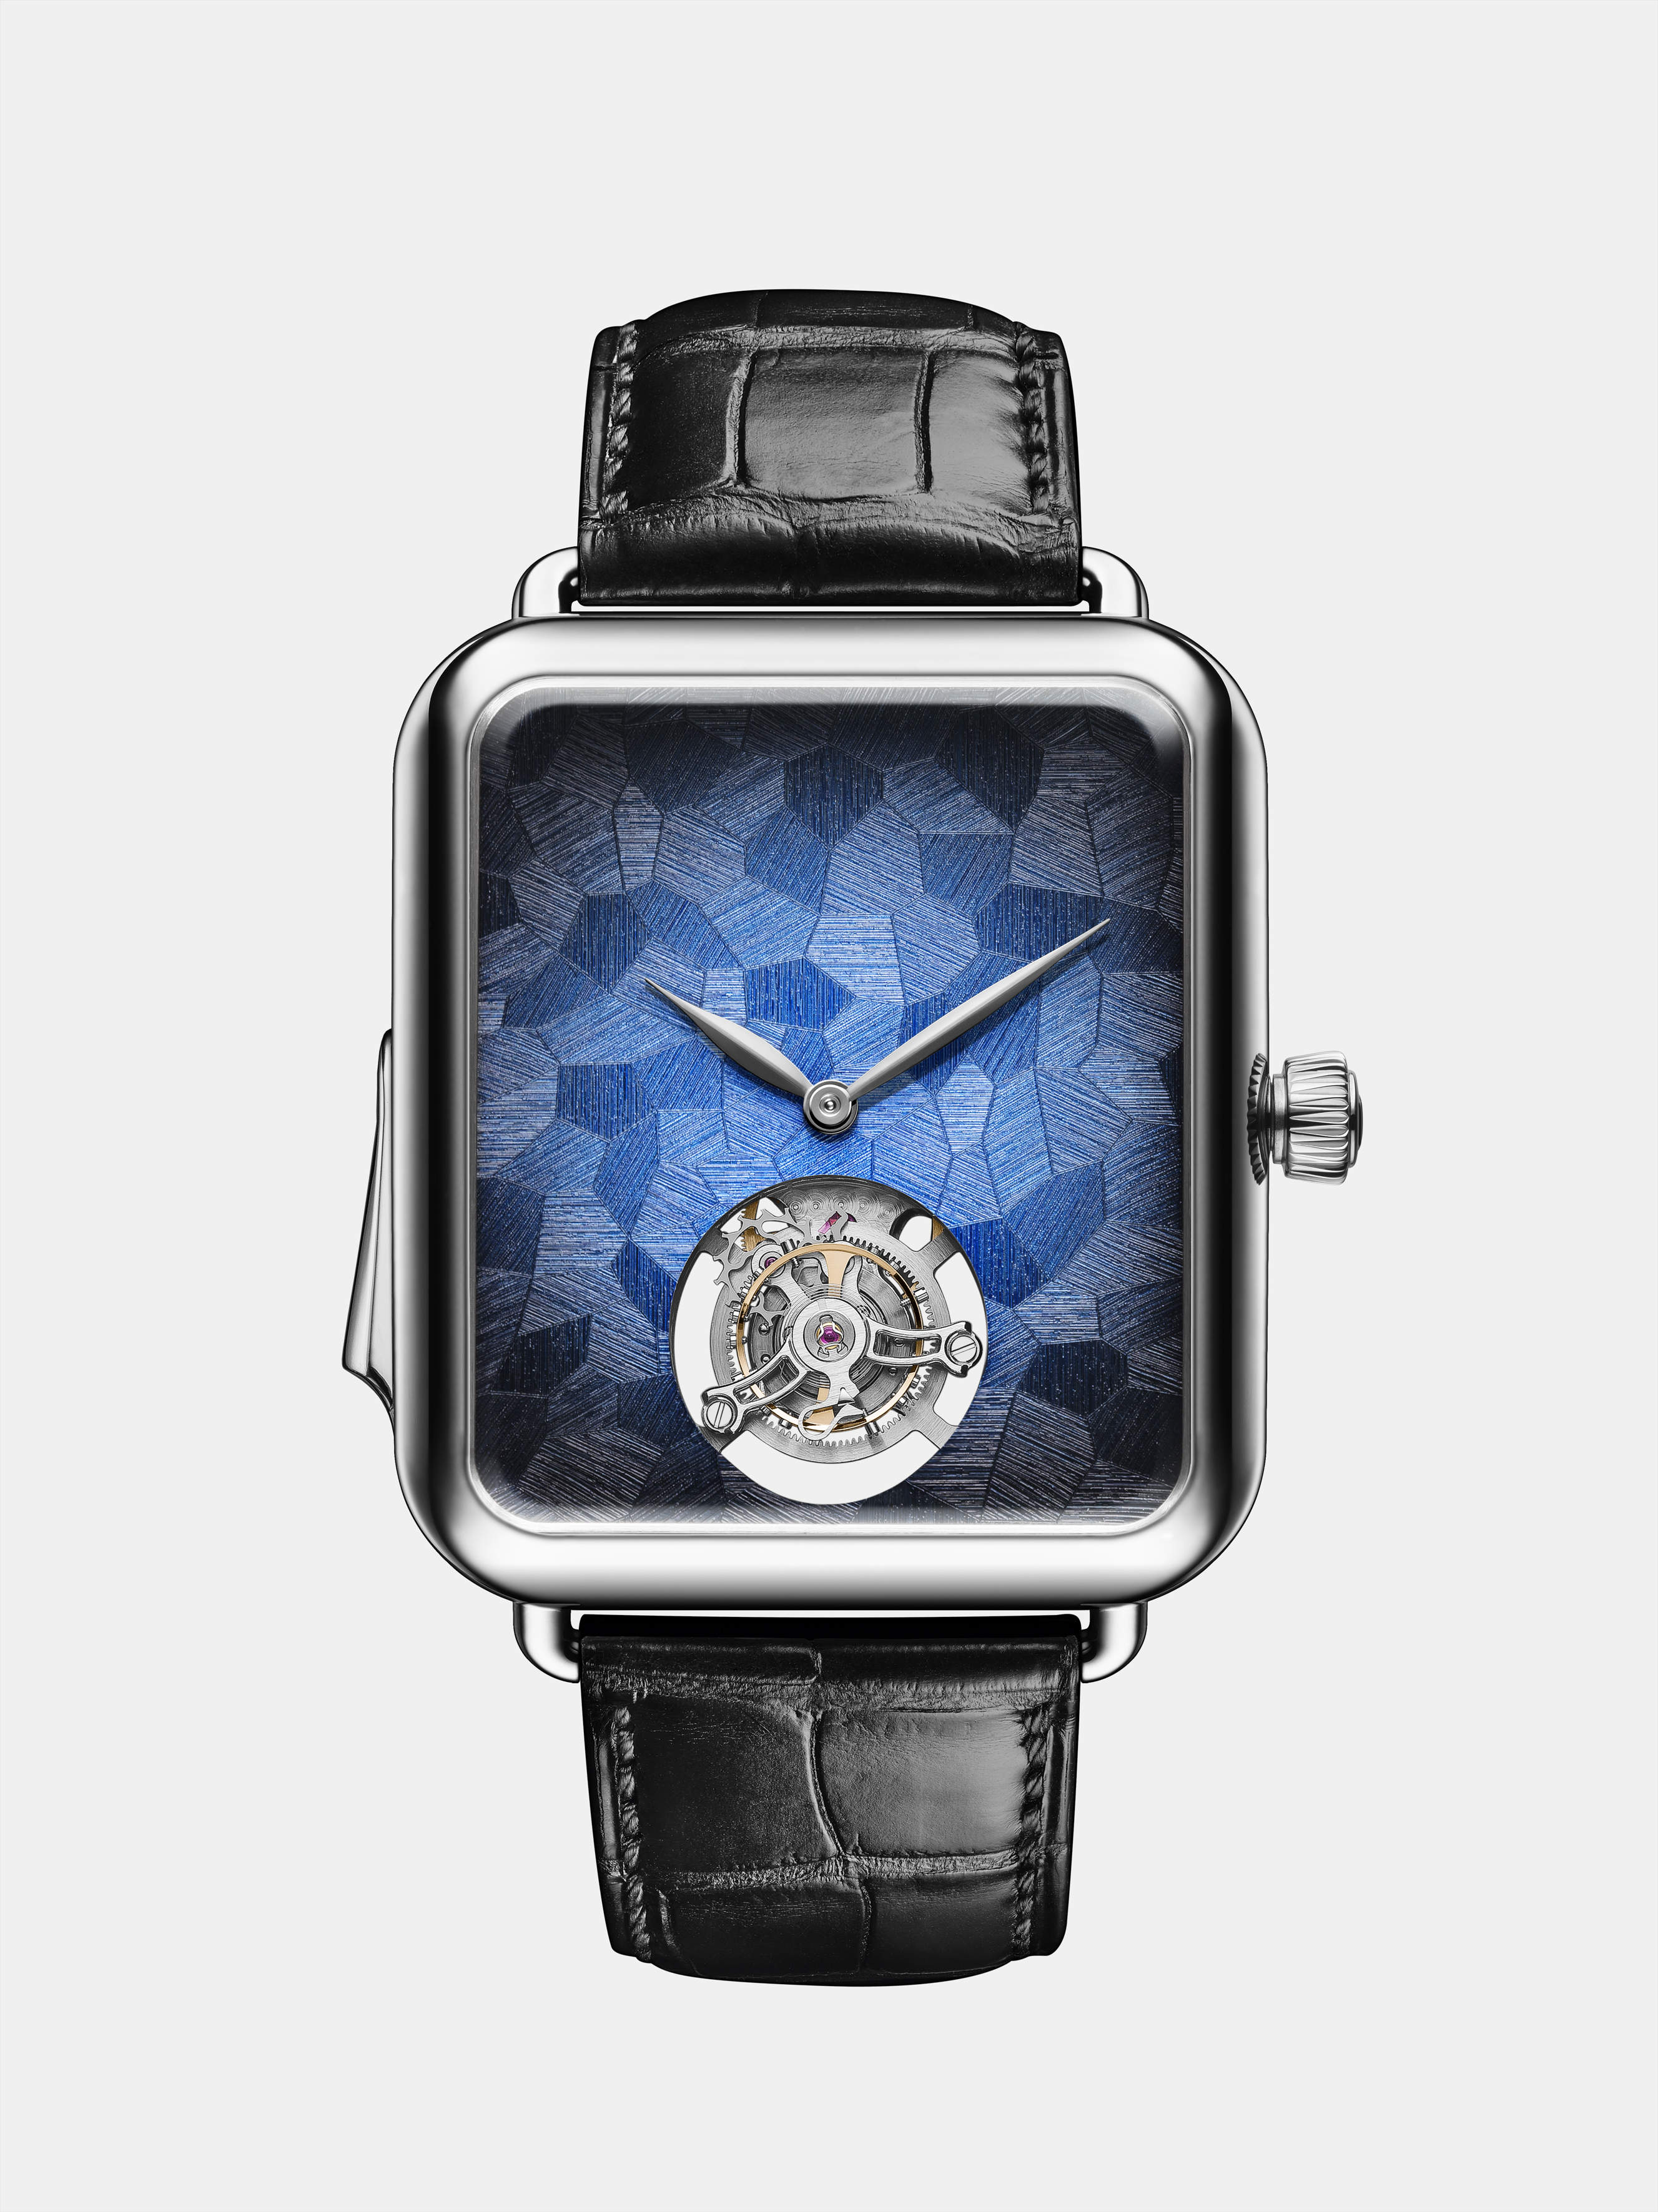 Top 50 Watches 2018 Archives Page 3 Of 5 Elite Traveler Kaos Polos Twotone Navy Blue Swiss Alp Wactch Minute Repeater Tourbilon 5901 0200 Soldat White Background